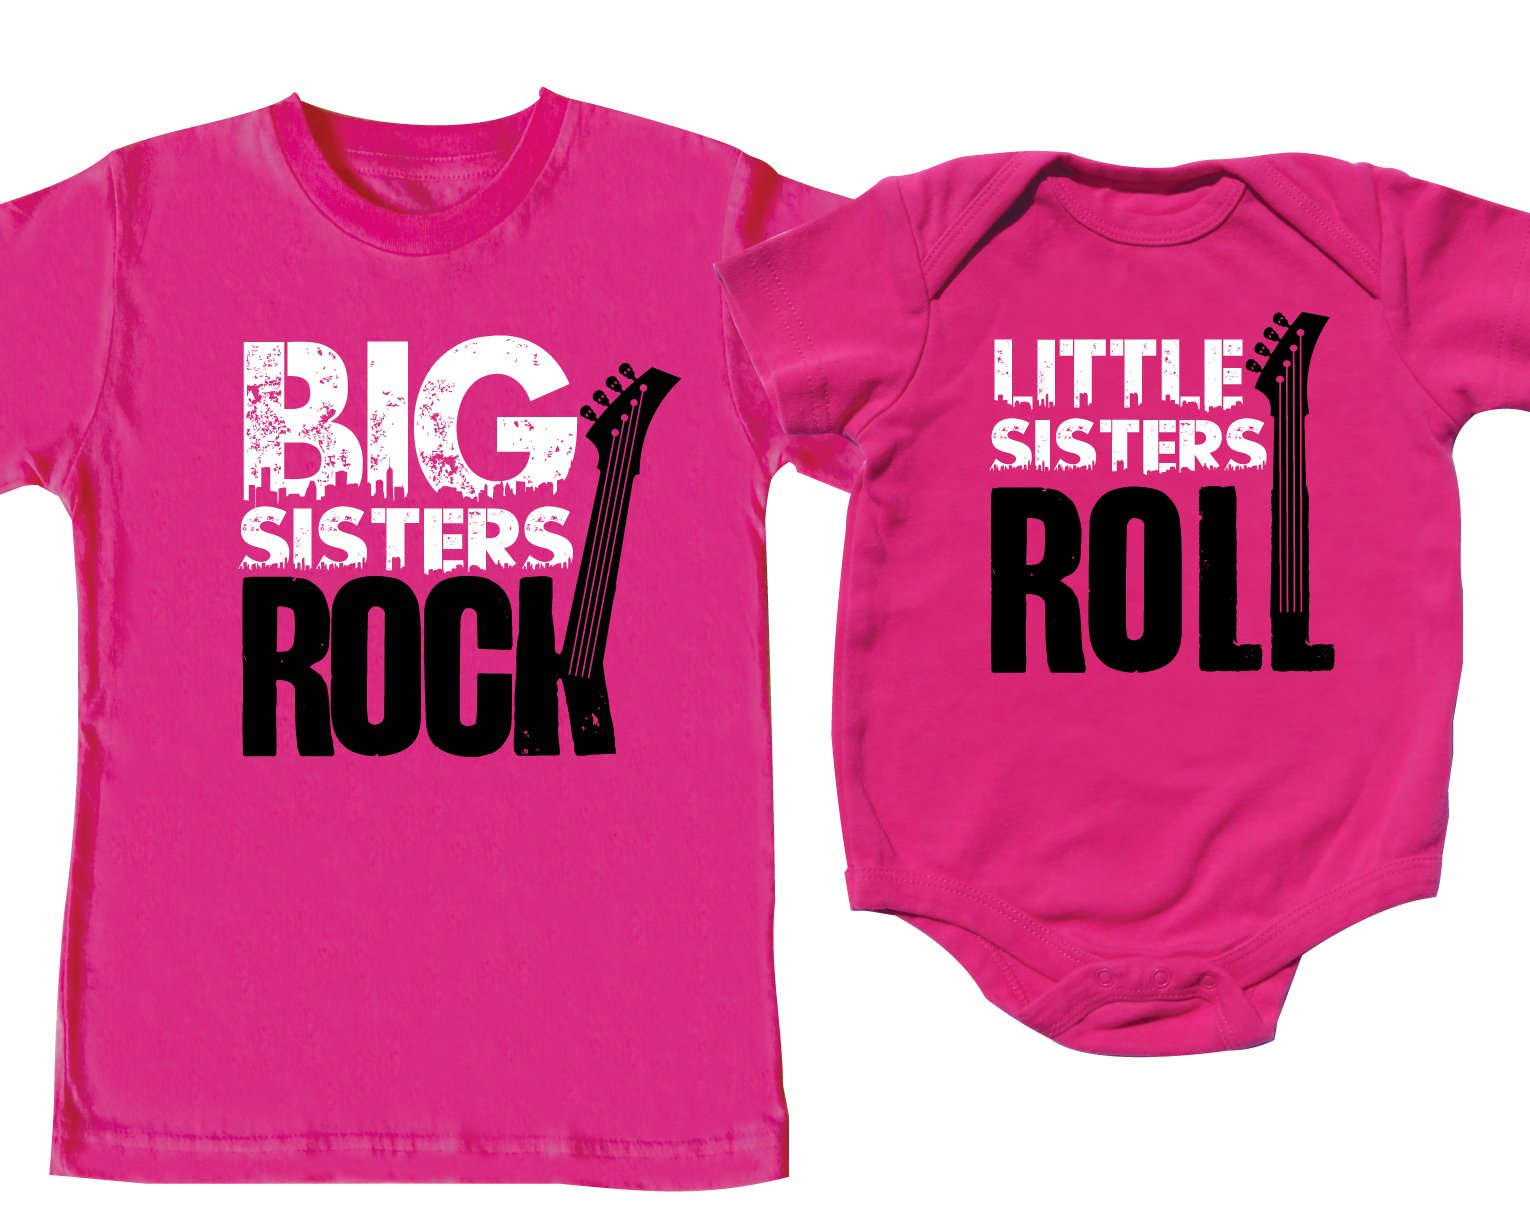 Nursery Decals and More Matching Shirts, Big Sisters & Little Sisters, Includes Small (6-8) & 0-3 mo by Nursery Decals and More